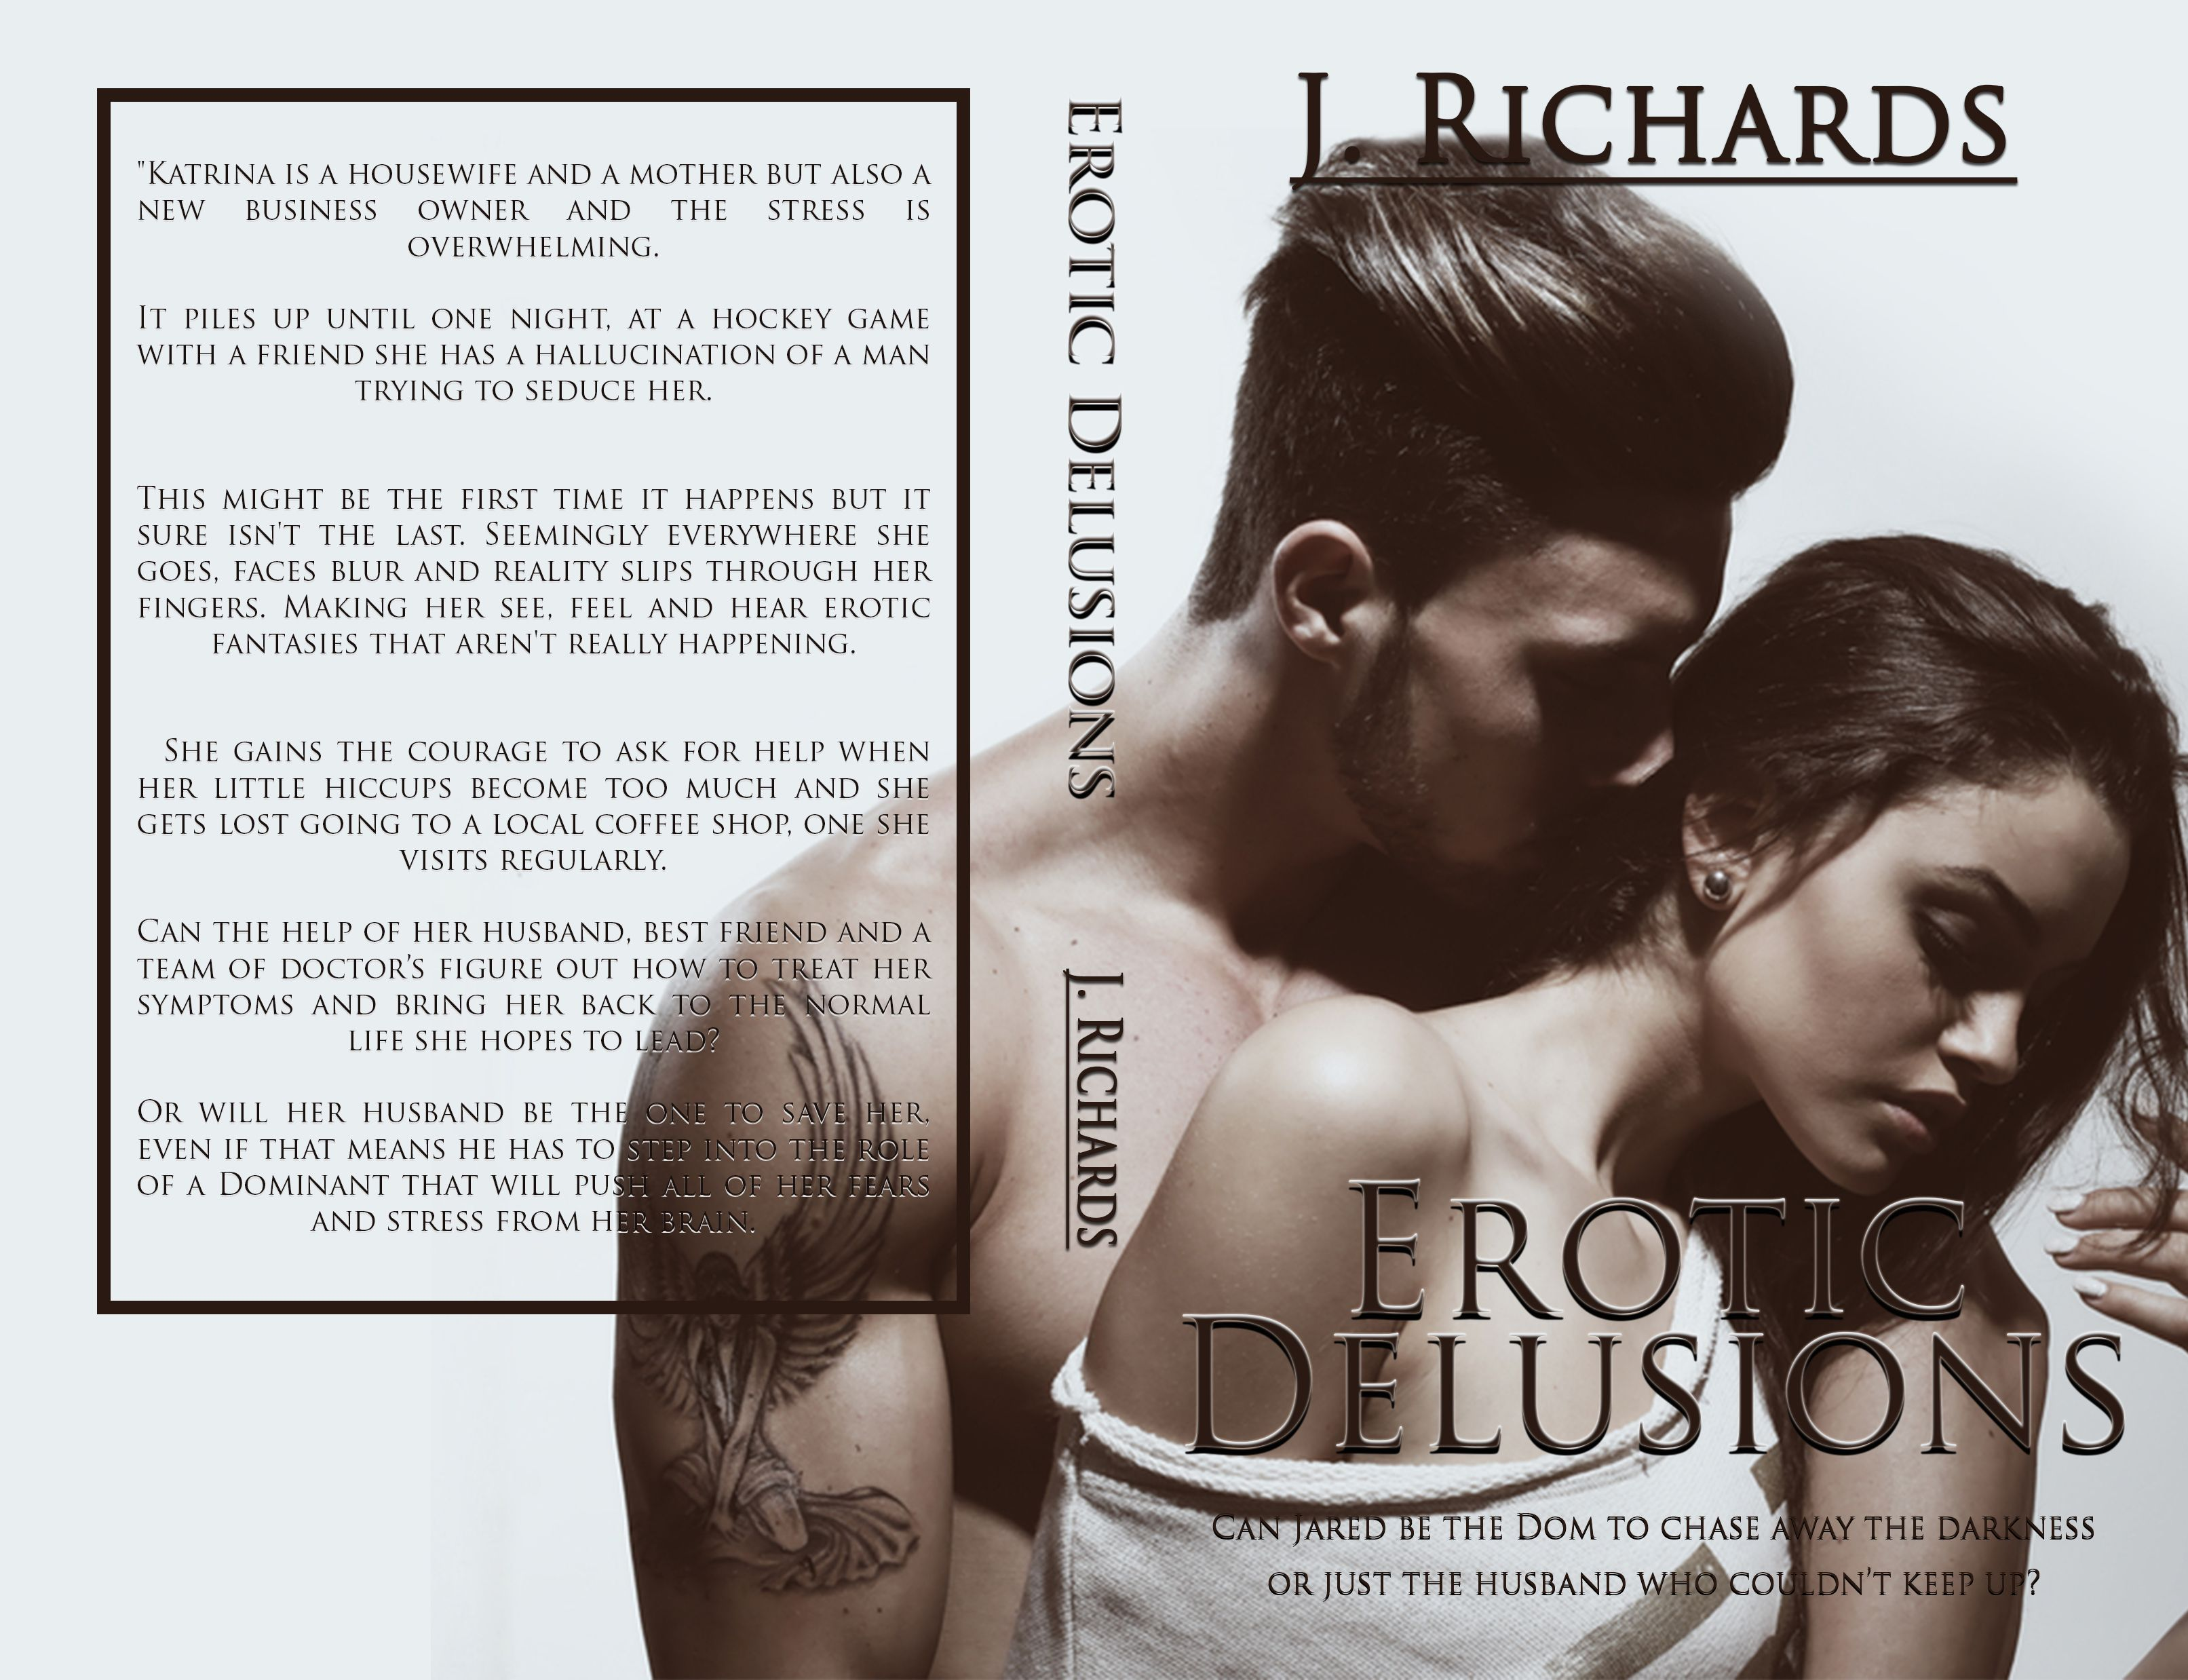 Erotic Delusions By J. Richards, Available on Amazon